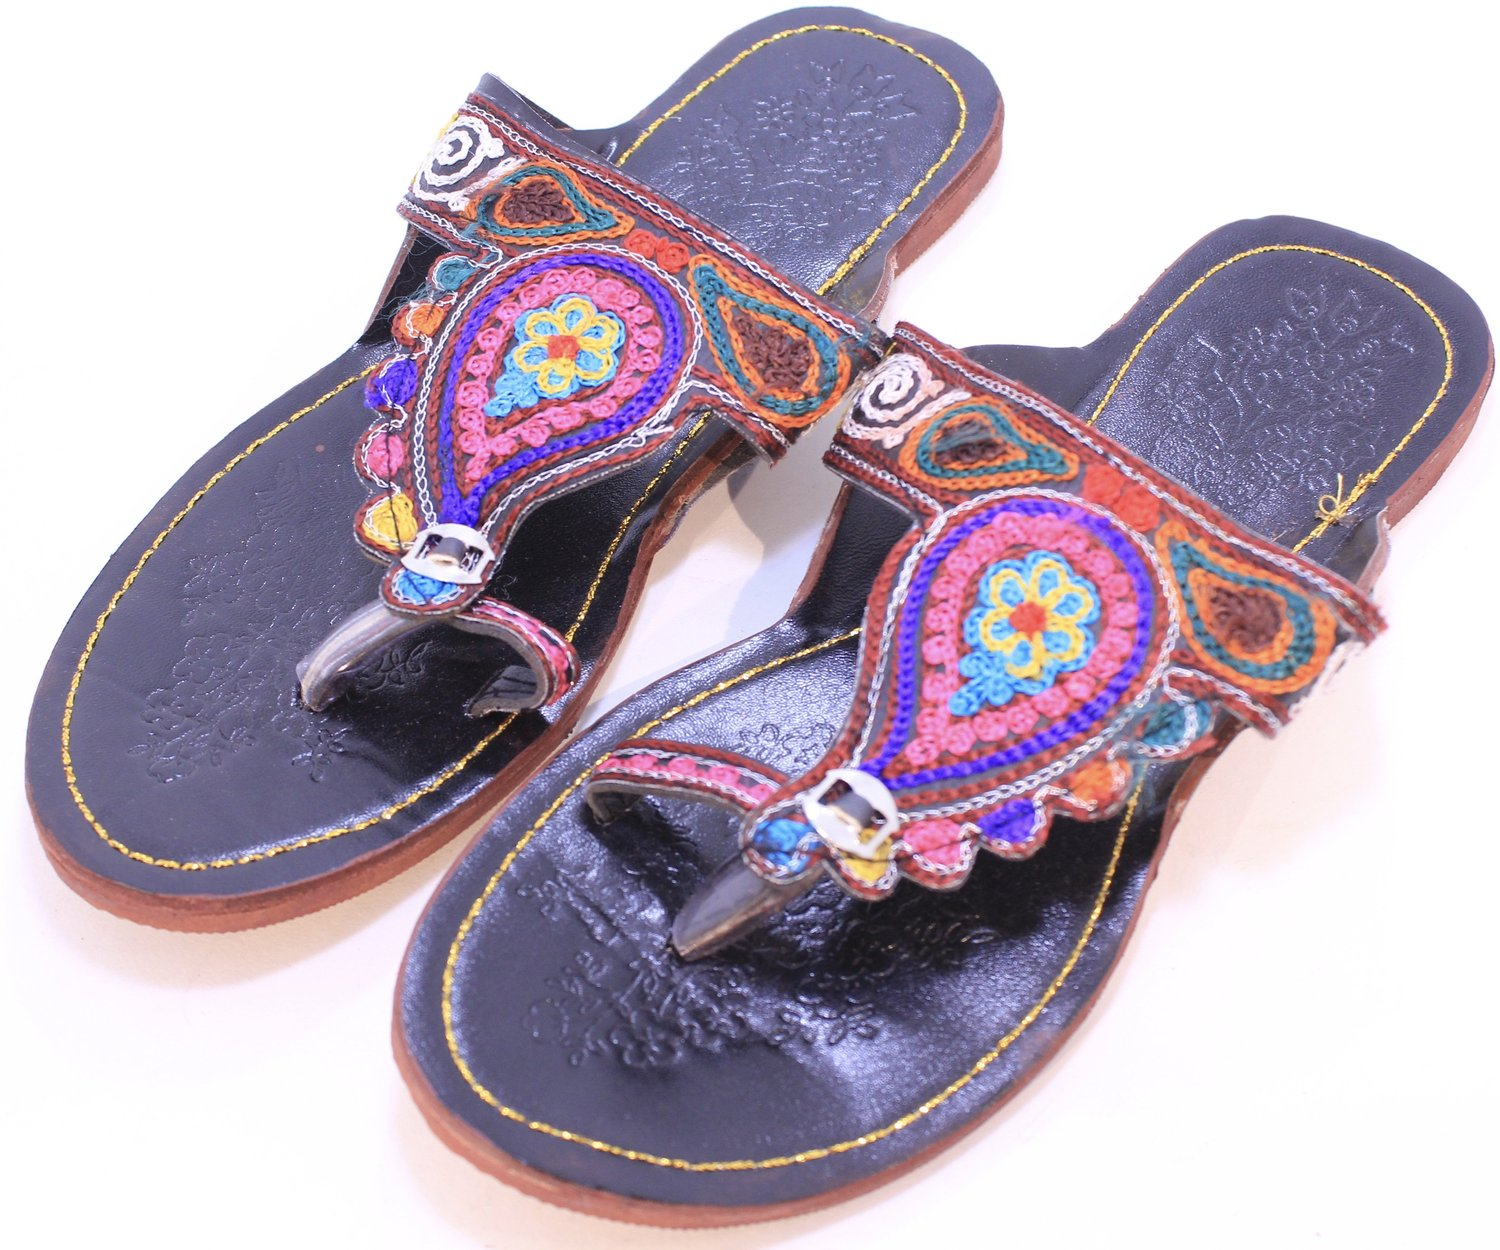 Fancy Hand Embroidered Paisley Leather Sandals